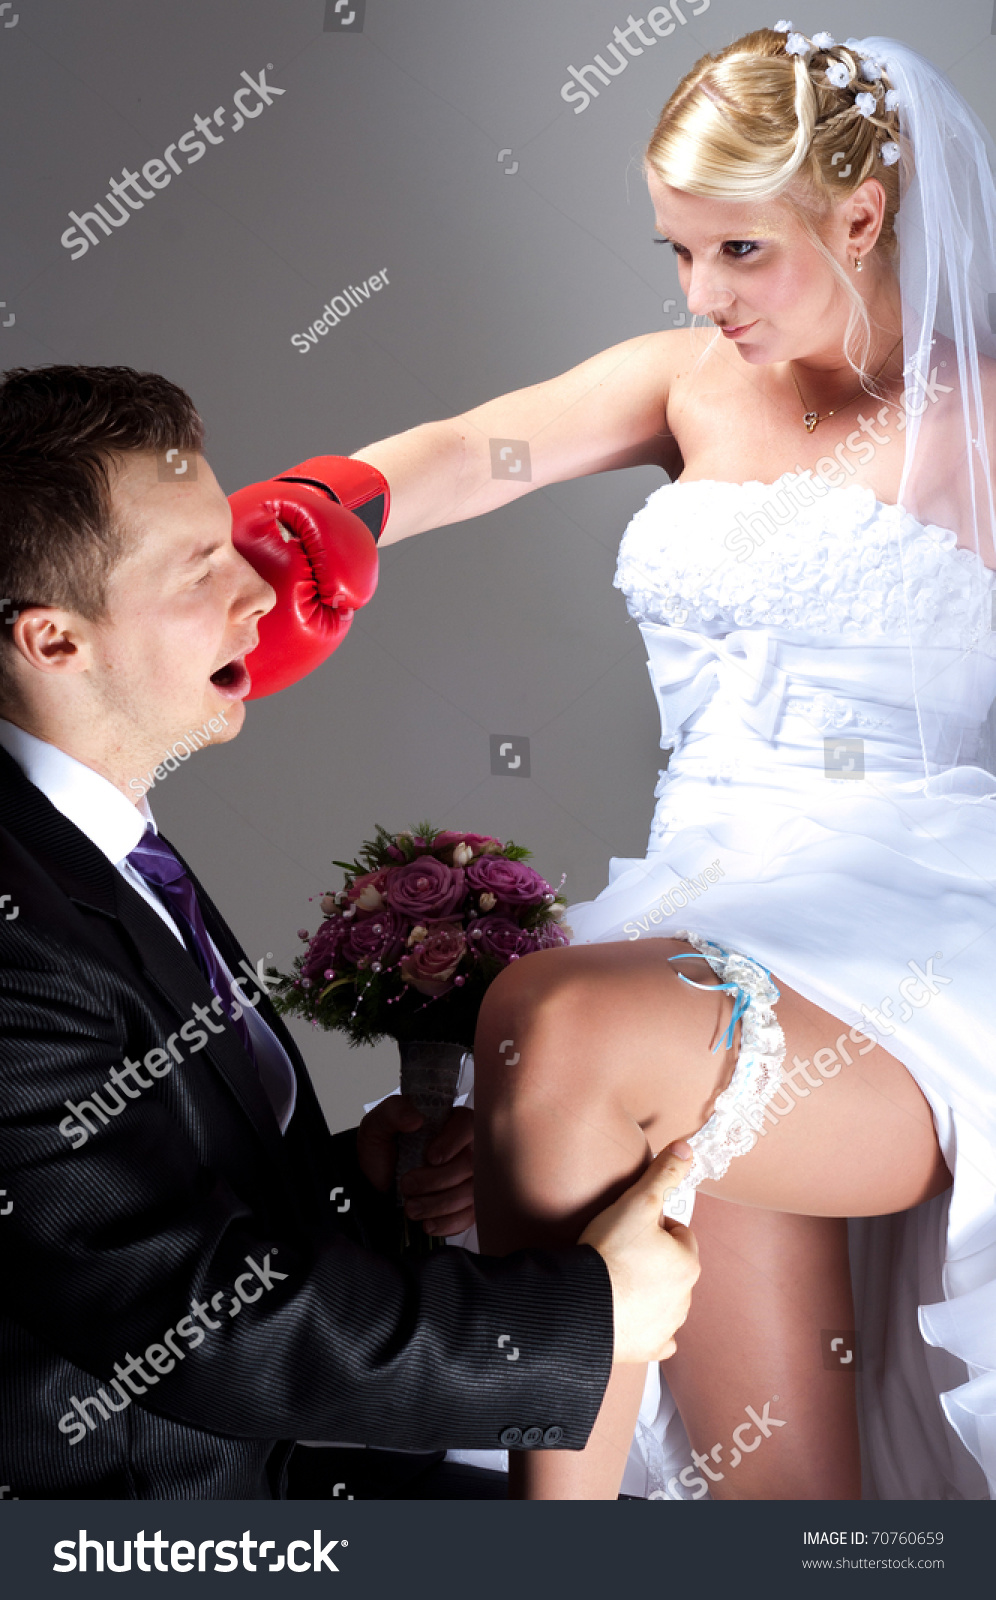 Young Bride Hitting Groom While He Takes Off Wedding Garter Stock Photo 70760659 Shutterstock